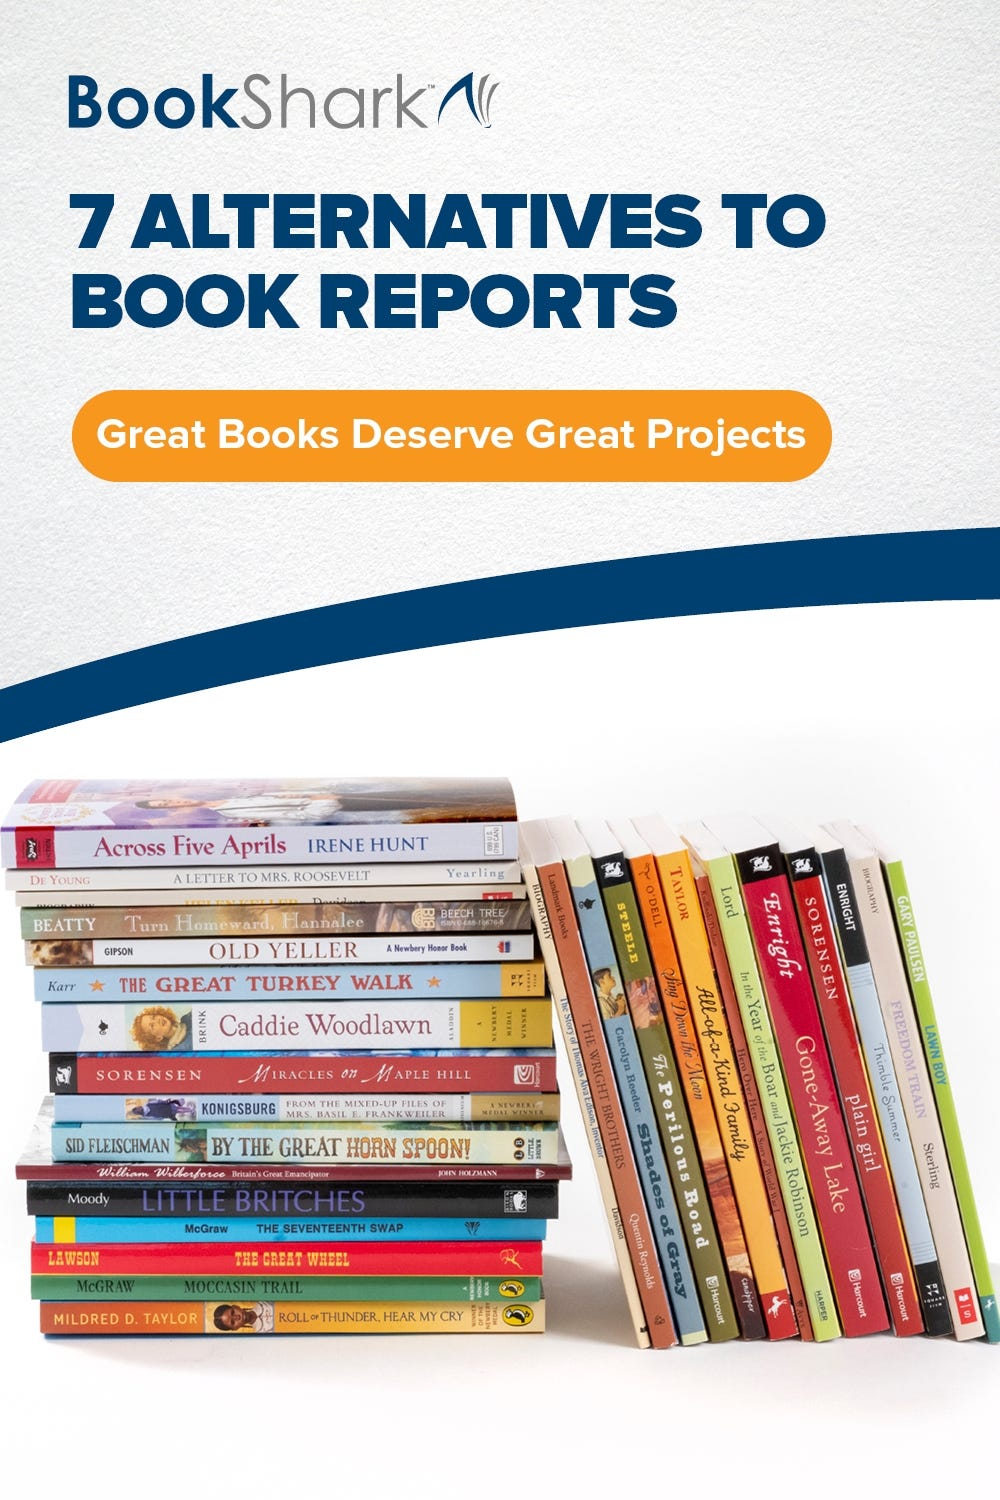 Great Books Deserve Great Projects: 7 Alternatives to Book Reports